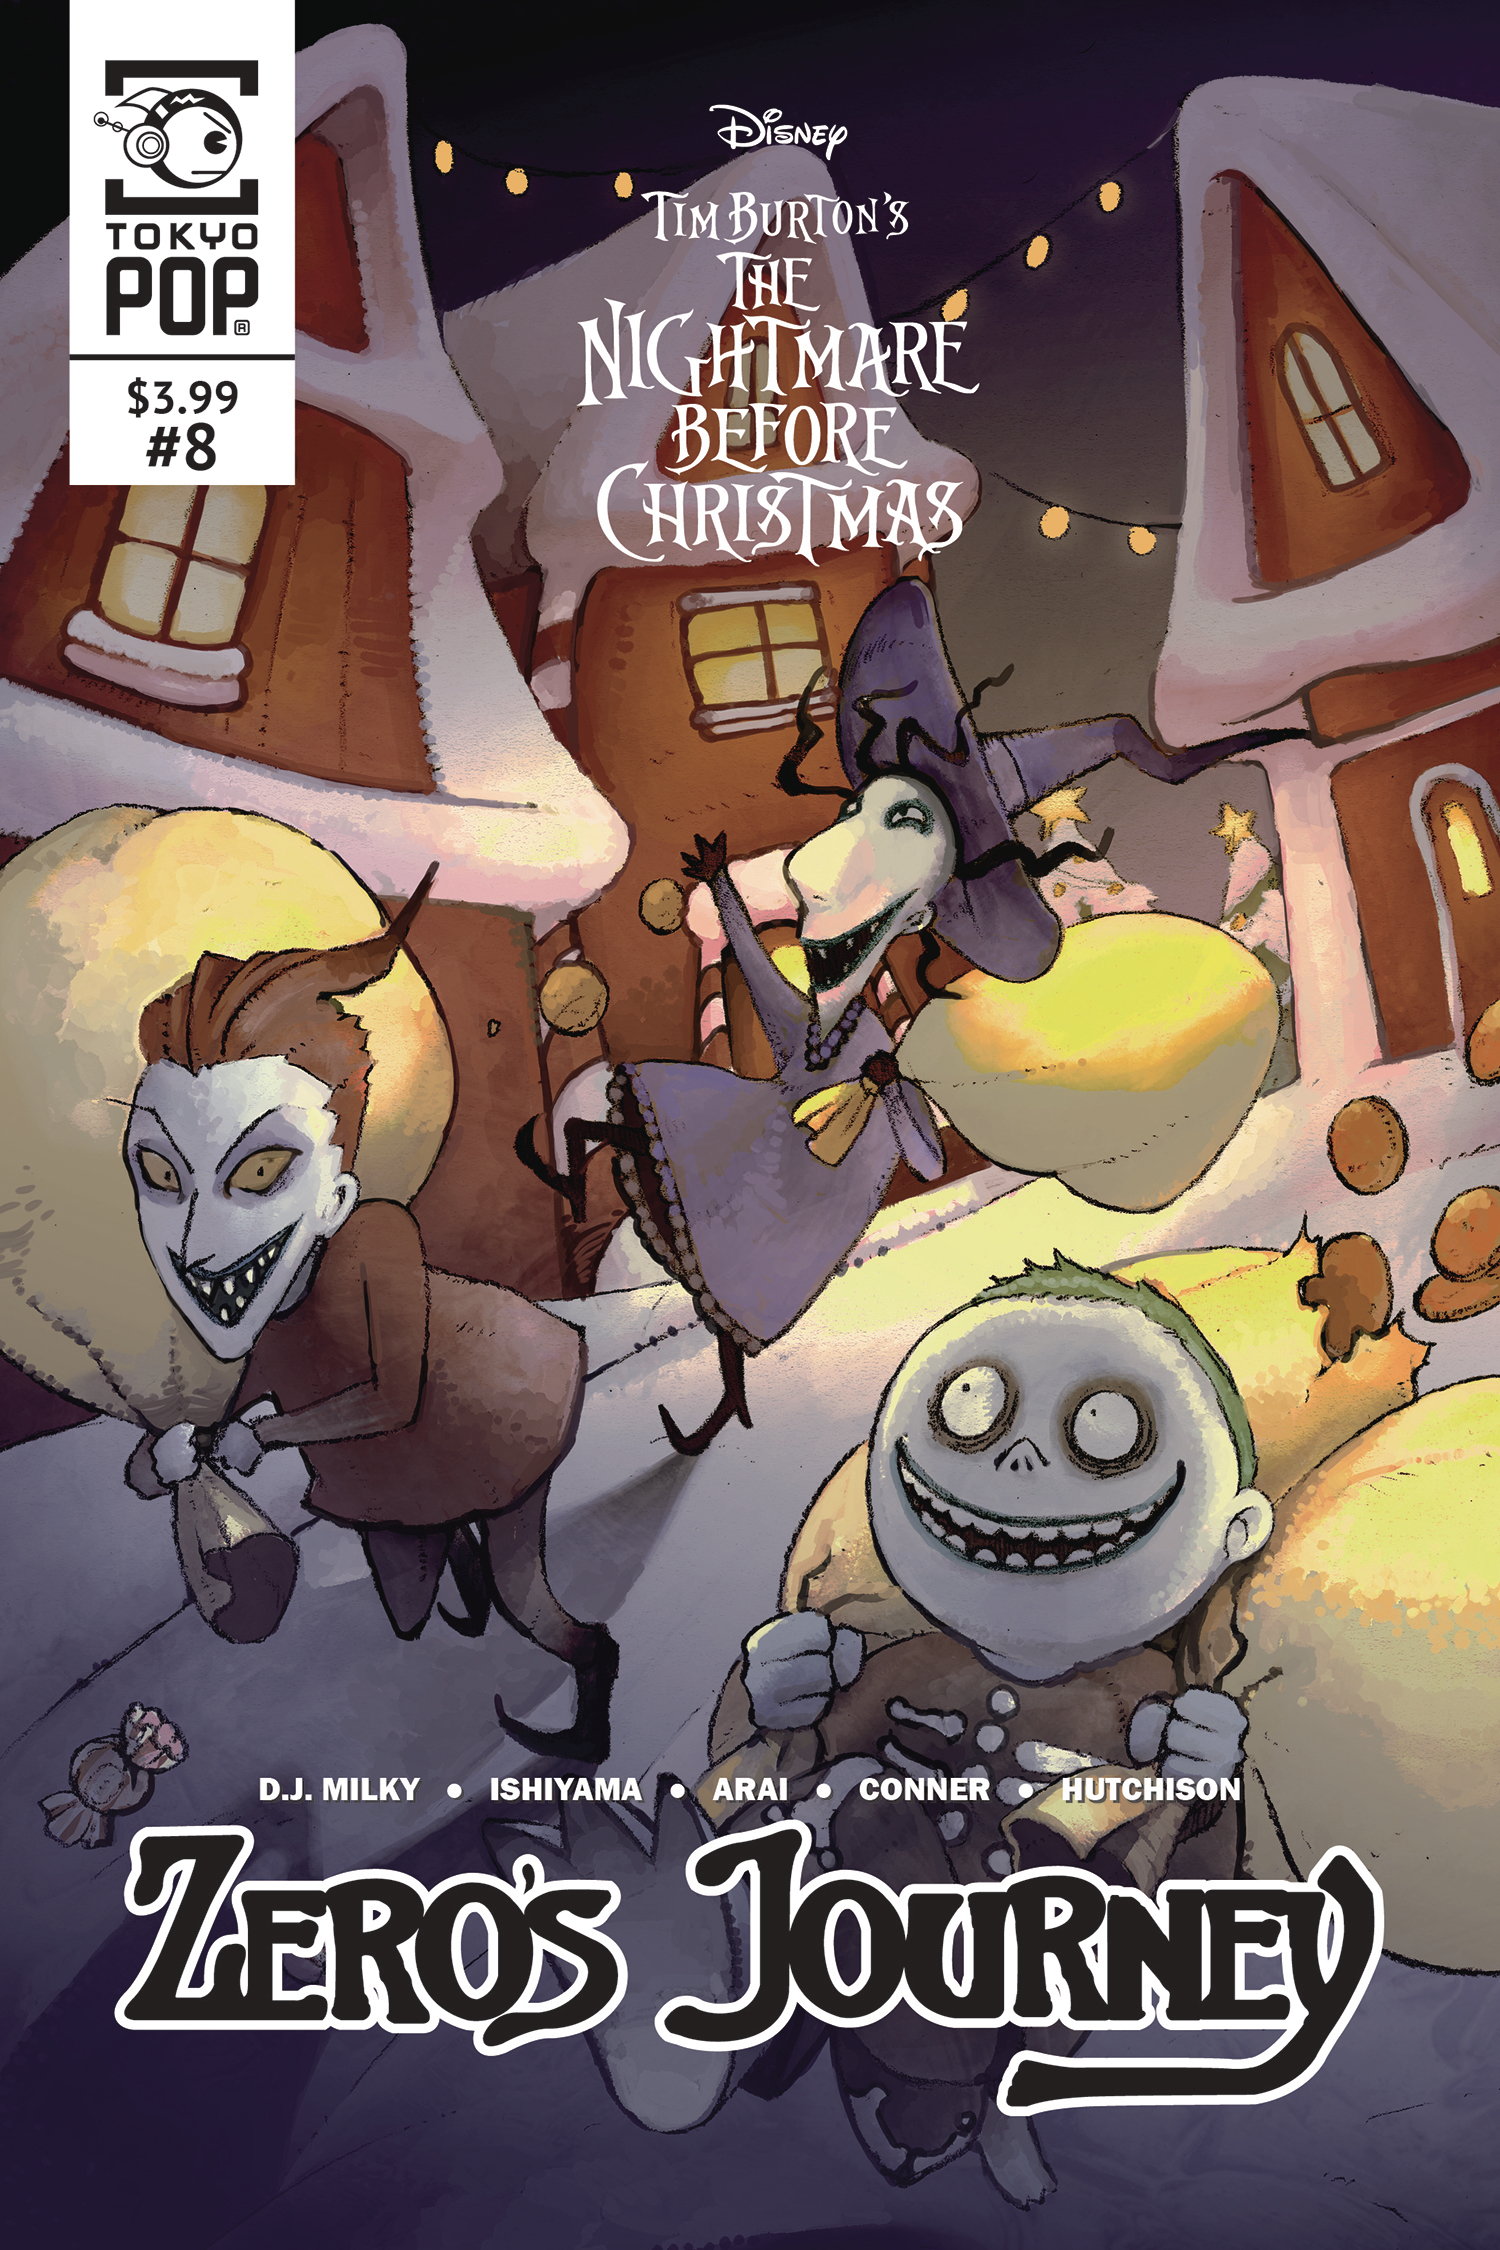 NIGHTMARE BEFORE CHRISTMAS ZEROS JOURNEY #8